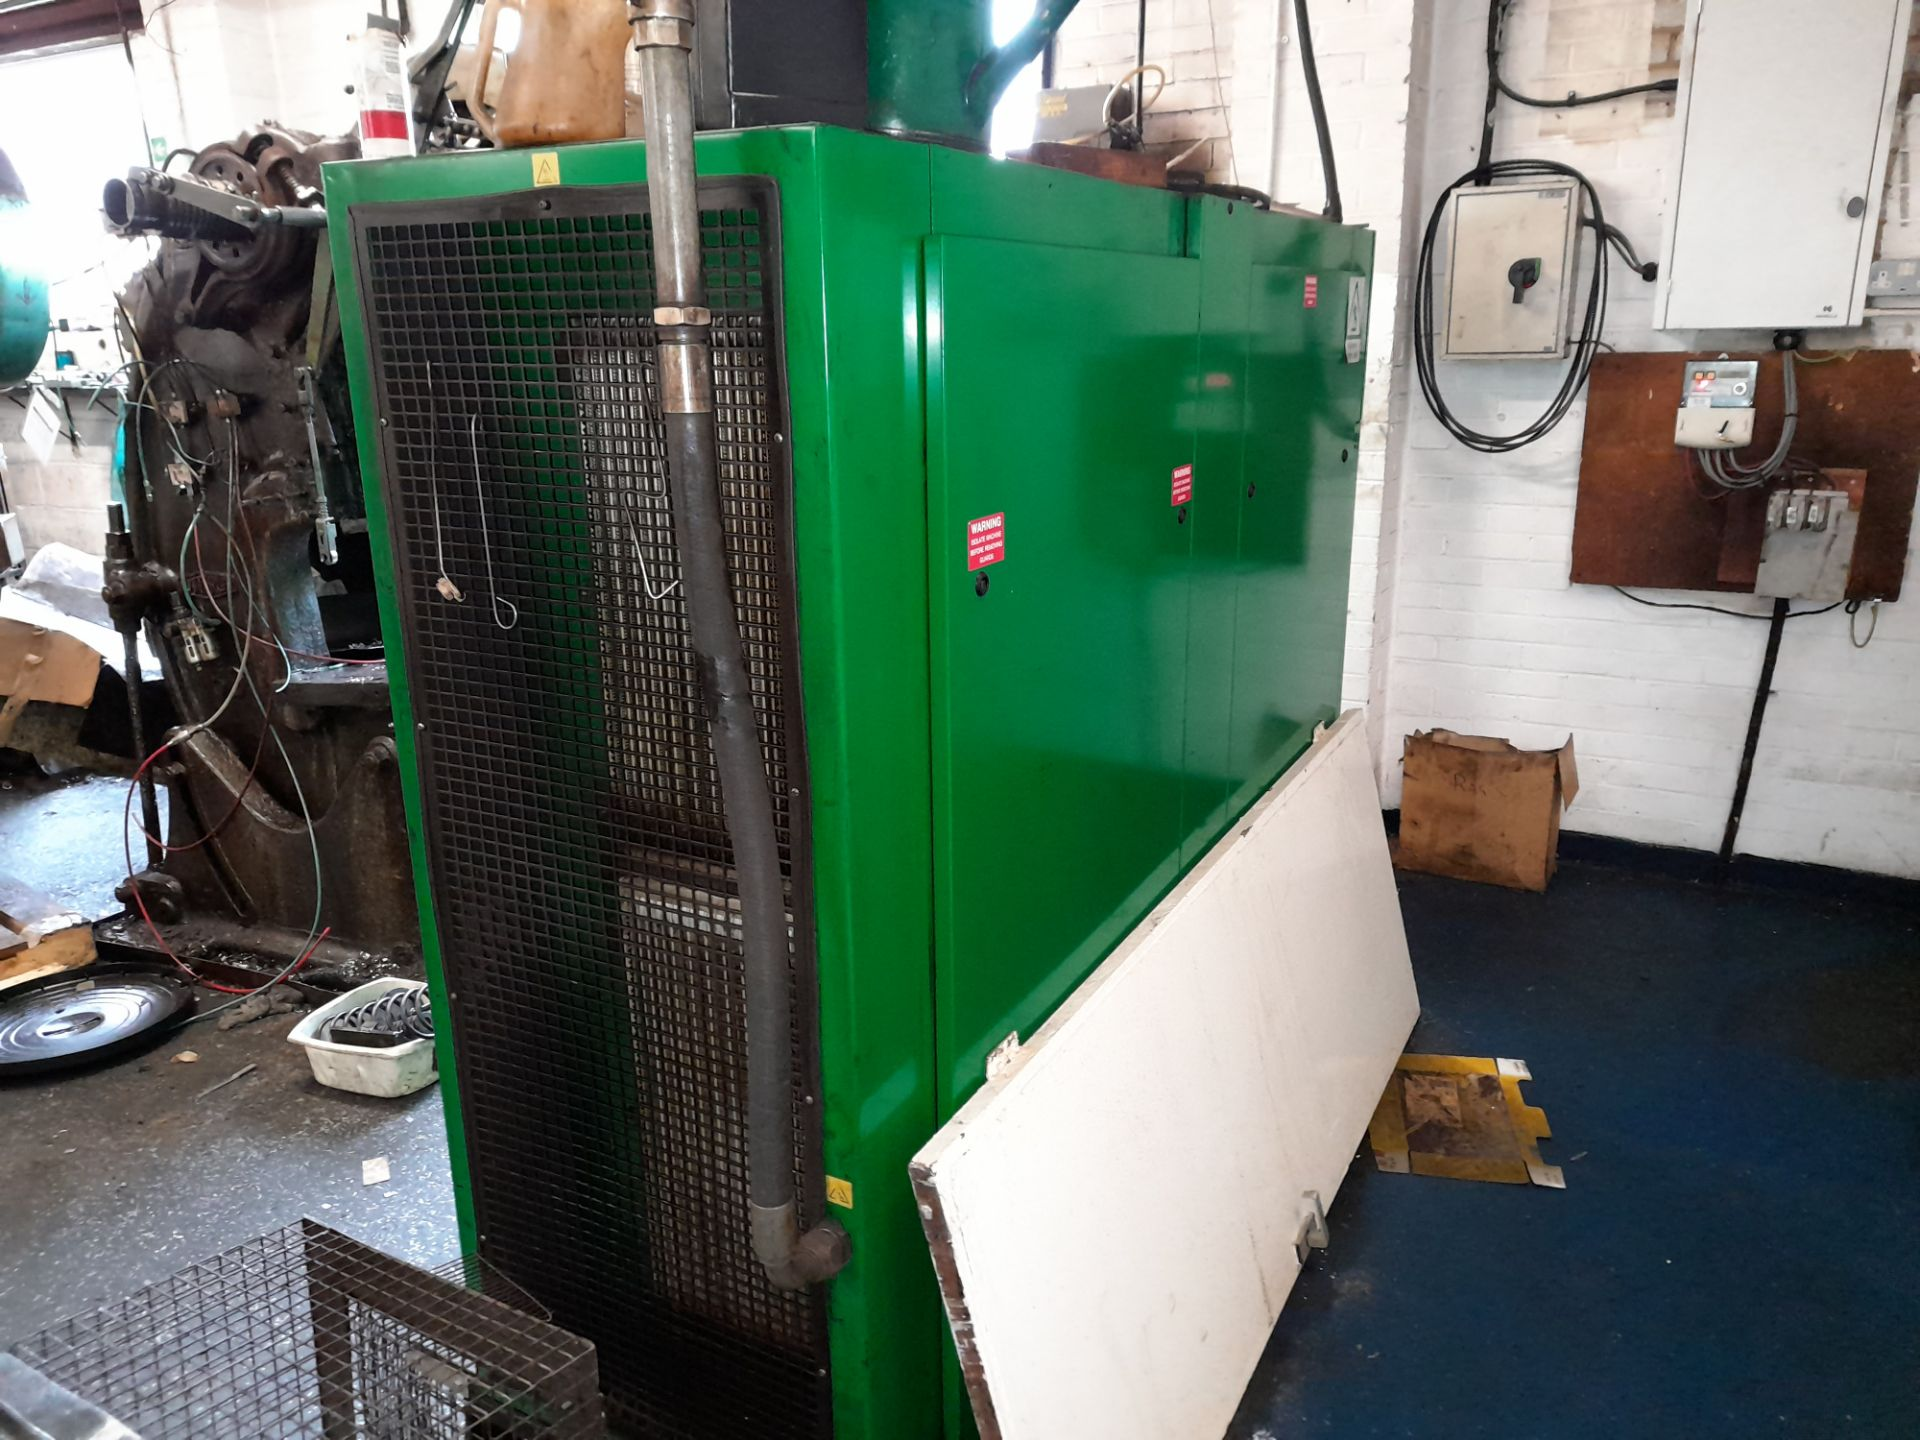 Avelair 8MS 30 Packaged Air Compressor, 42677 Hour - Image 2 of 2